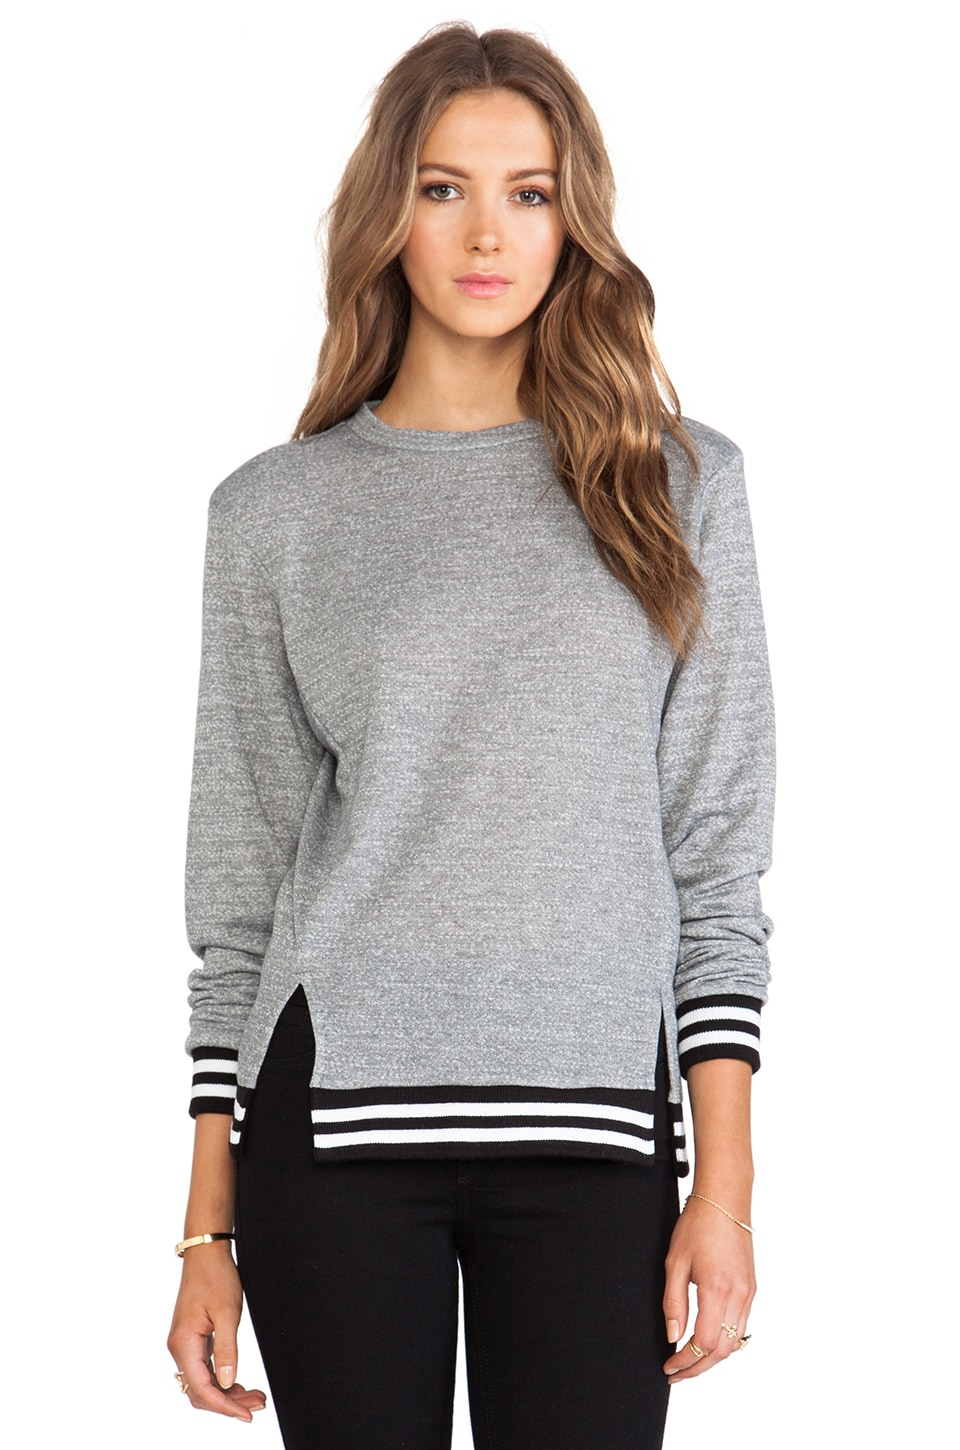 De Lacy DeLacy Shane Sweatshirt in Grey